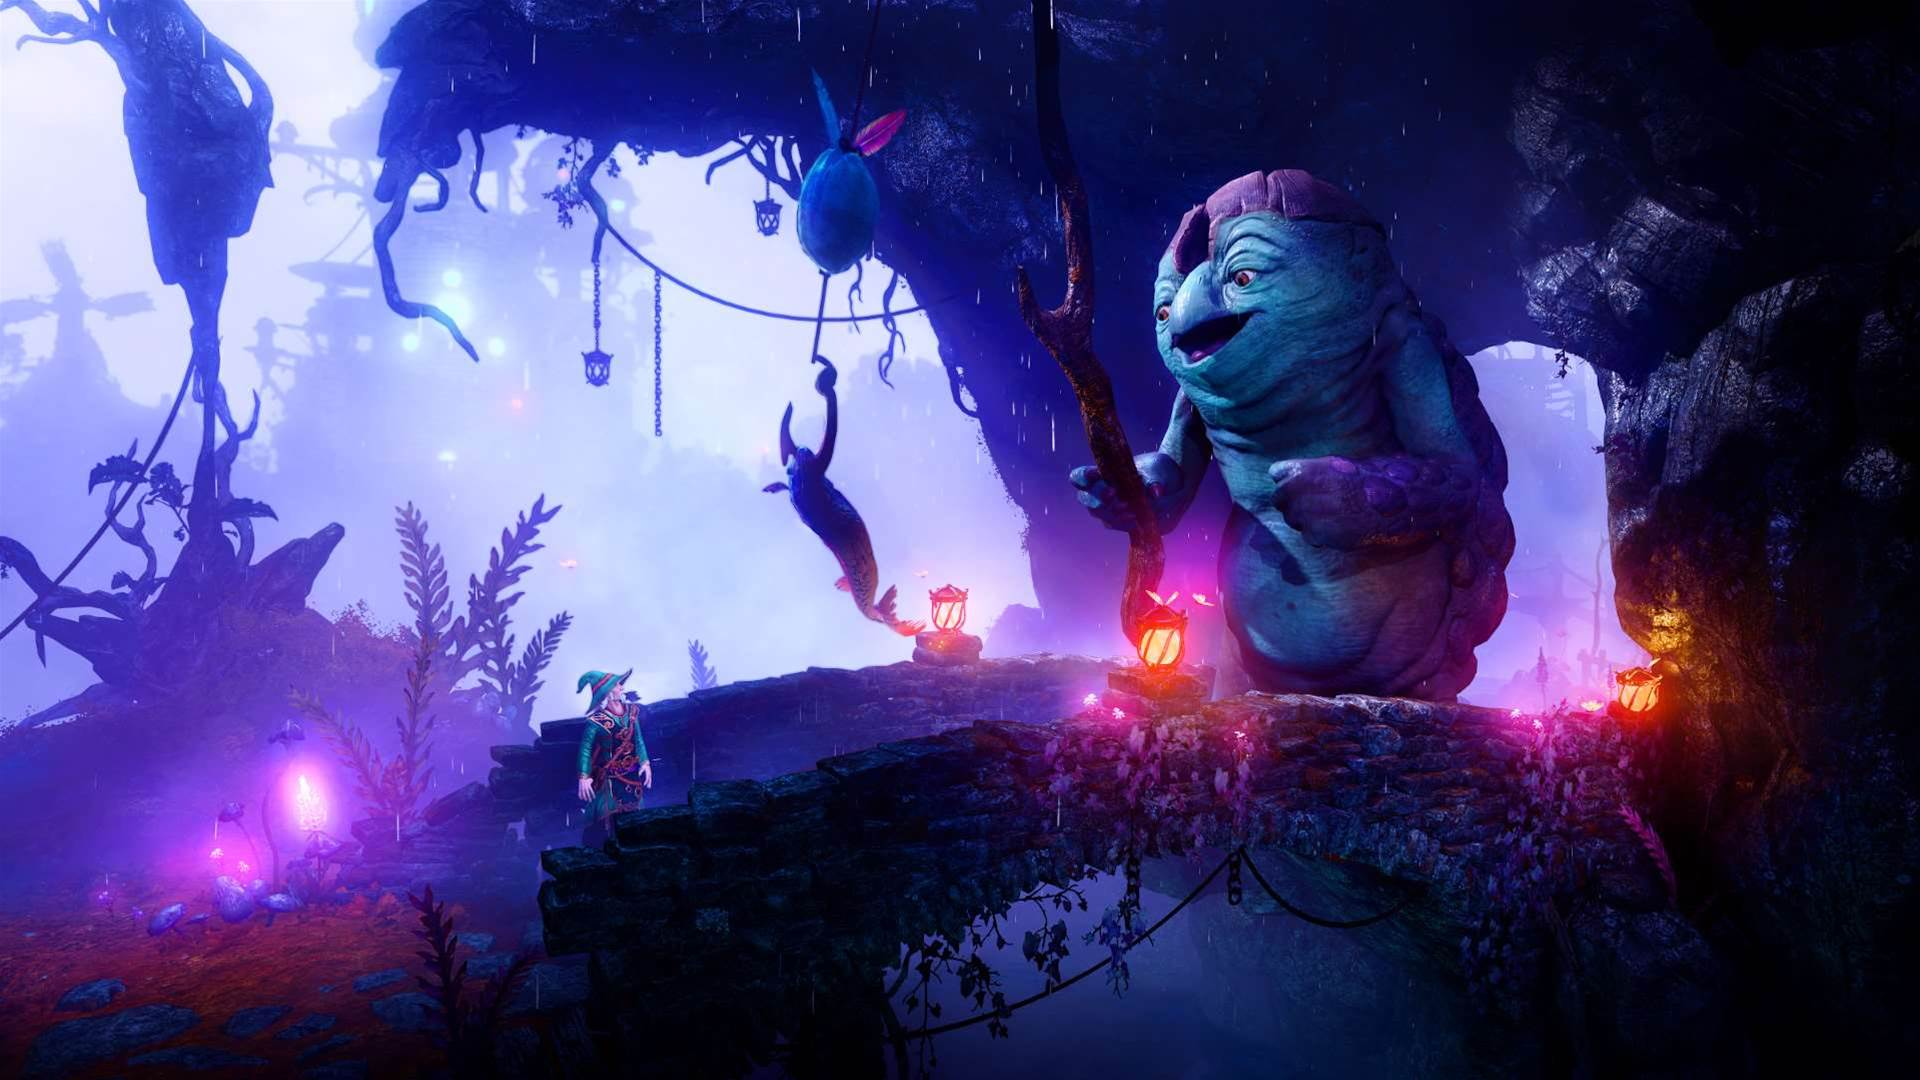 Trine 3 Early Access screenshots